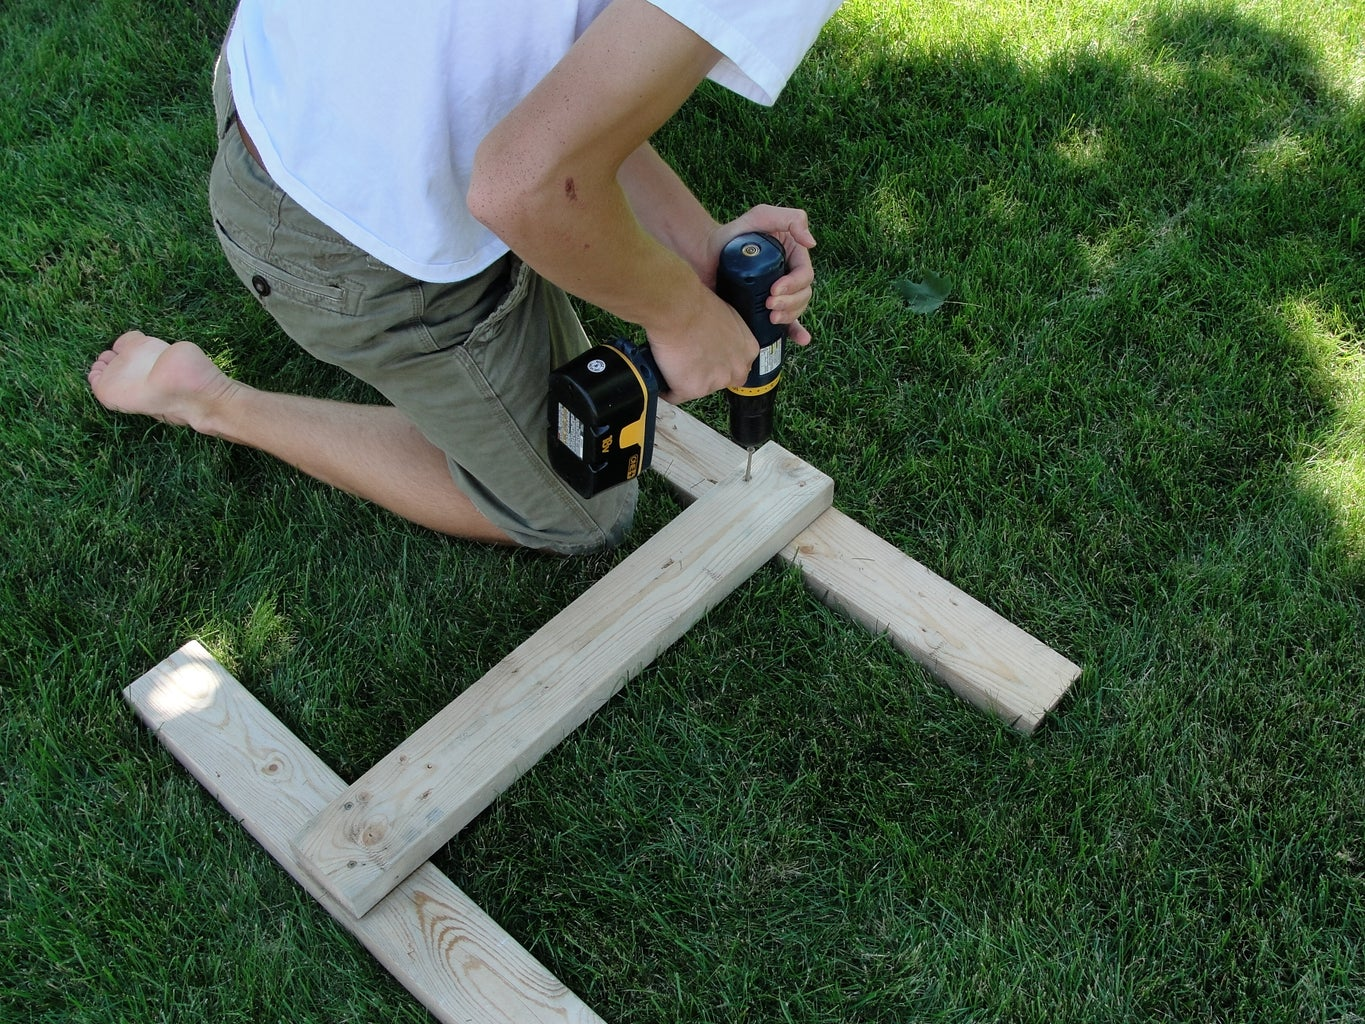 Build and Attach Legs and Hinges